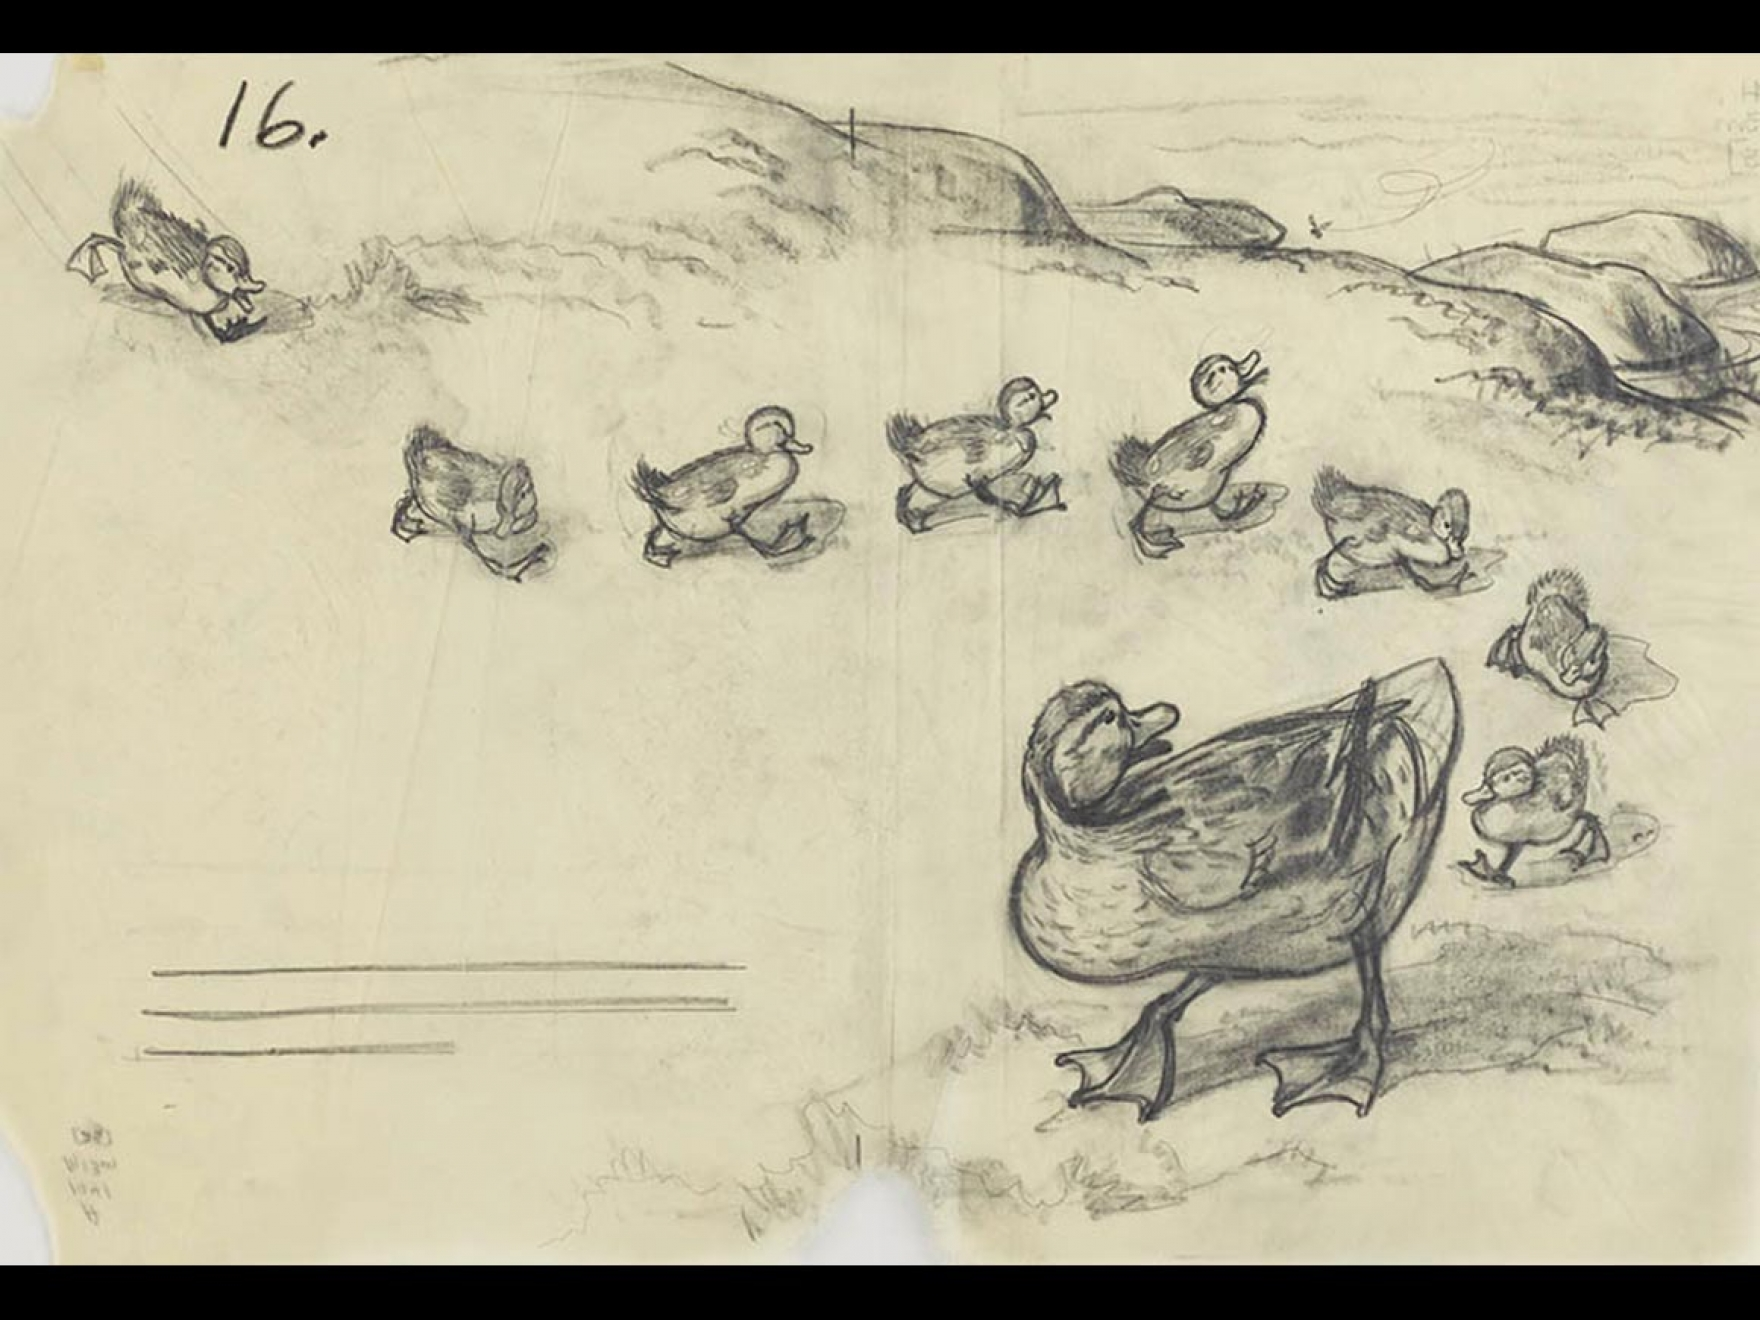 """Robert McCloskey's drawing for Make Way for Ducklings (""""She taught them to walk in a line, to come when they were called, and to keep a safe distance from bikes and scooters and other things with wheels,"""")"""